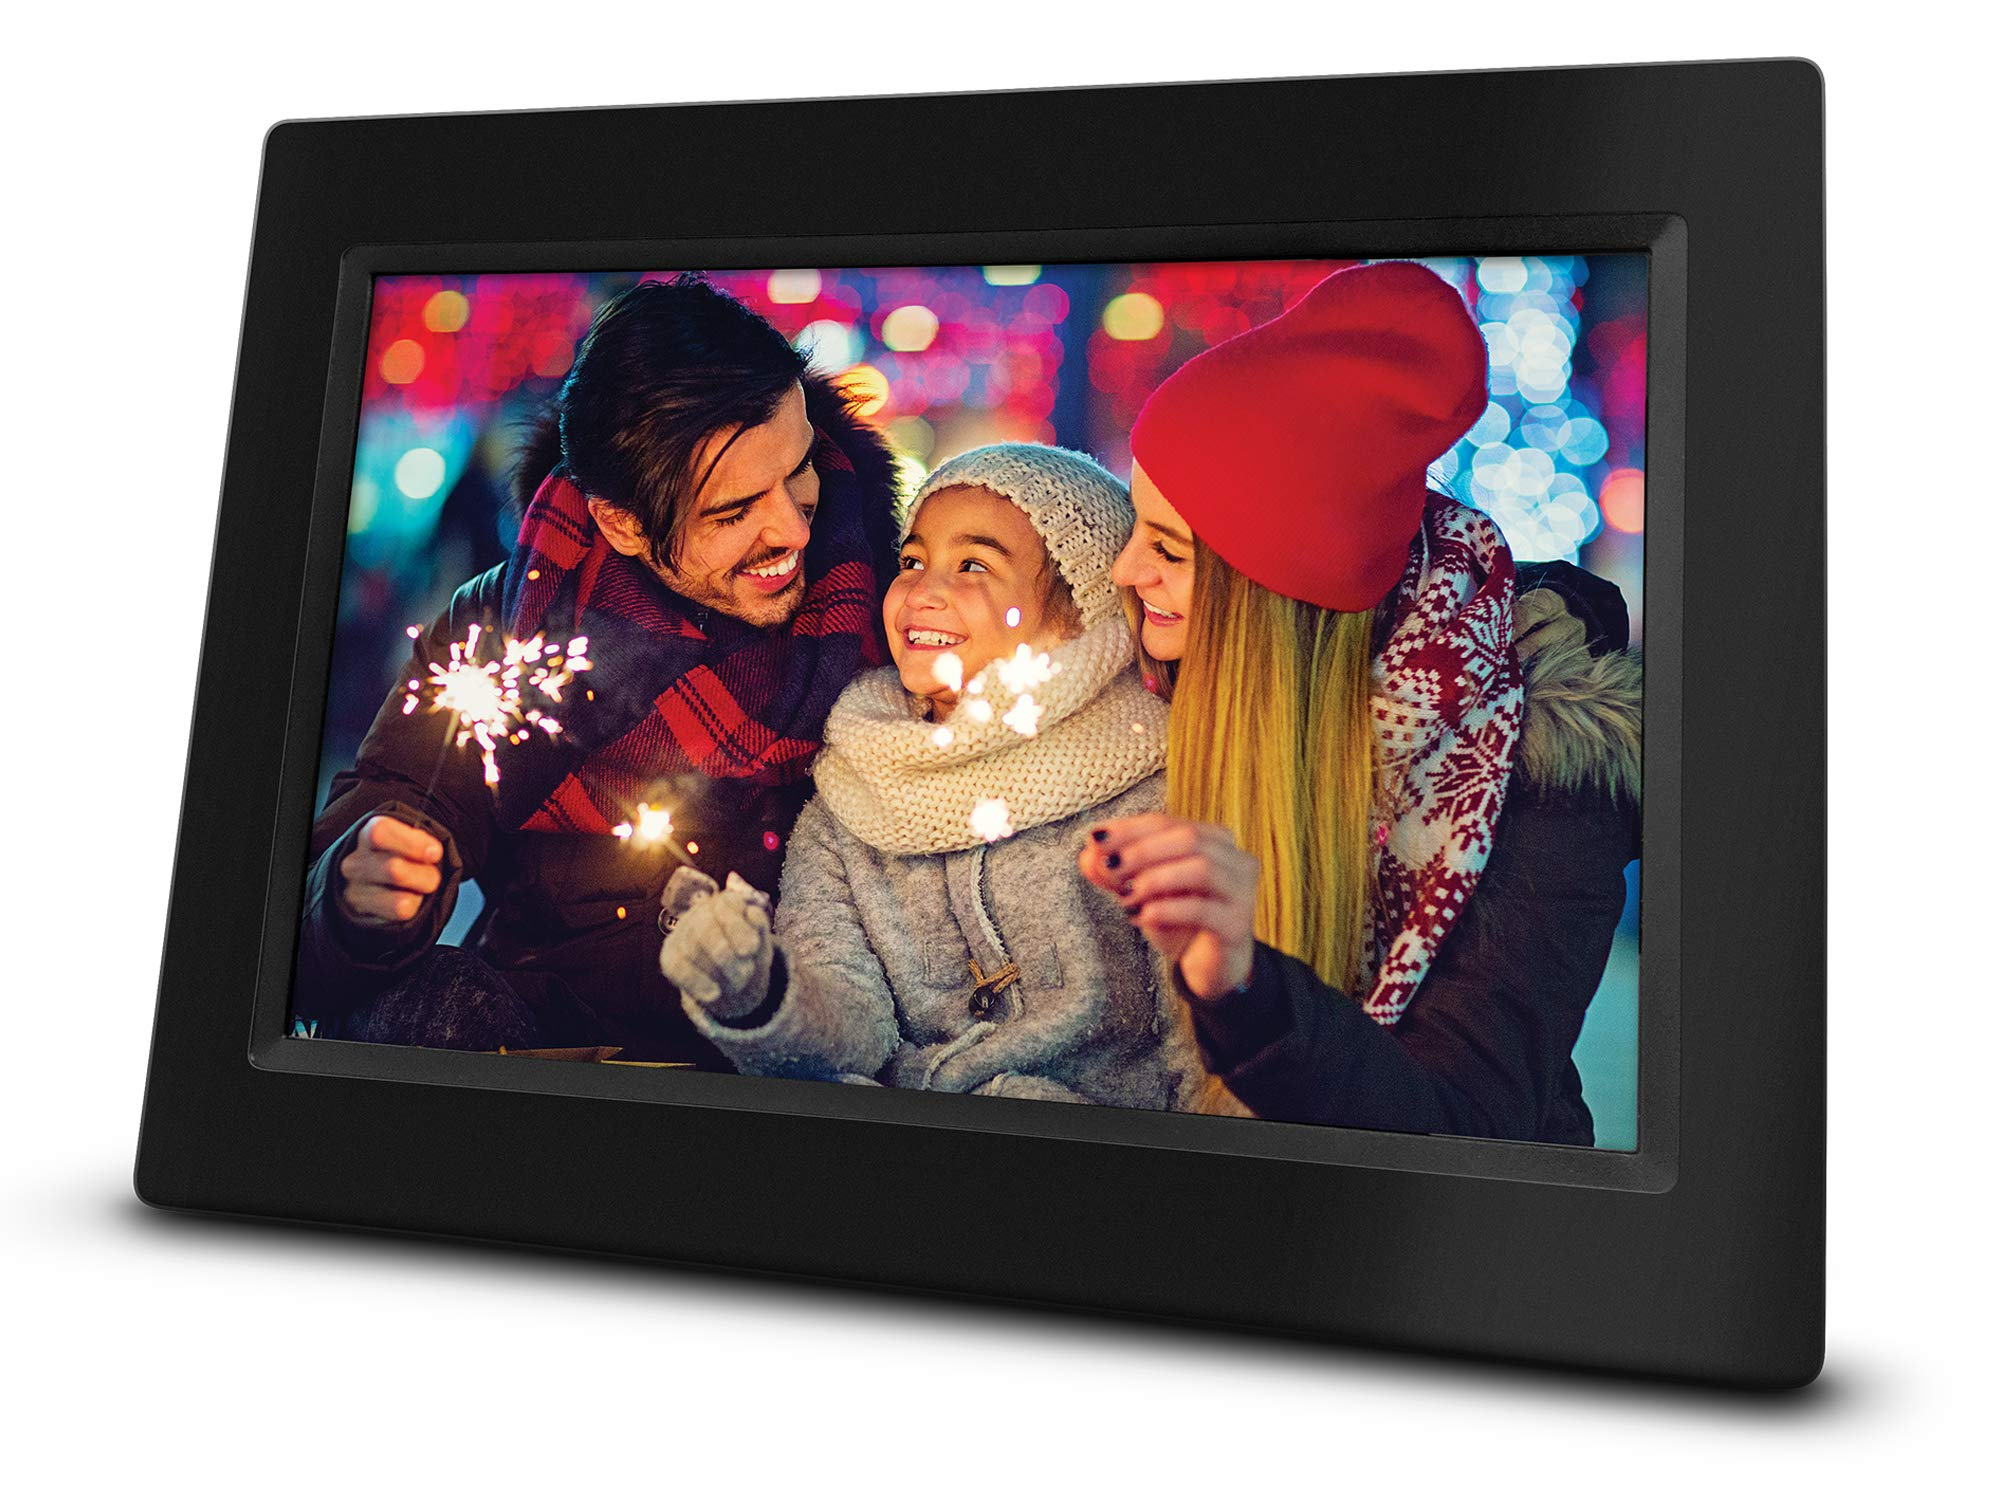 RCA 10'' Wi-Fi Digital Photo Frame | 8GB Internal Storage, Touch Screen, Slideshow Feature. Instantly Sharing Memories. Worldwide Connectivity.